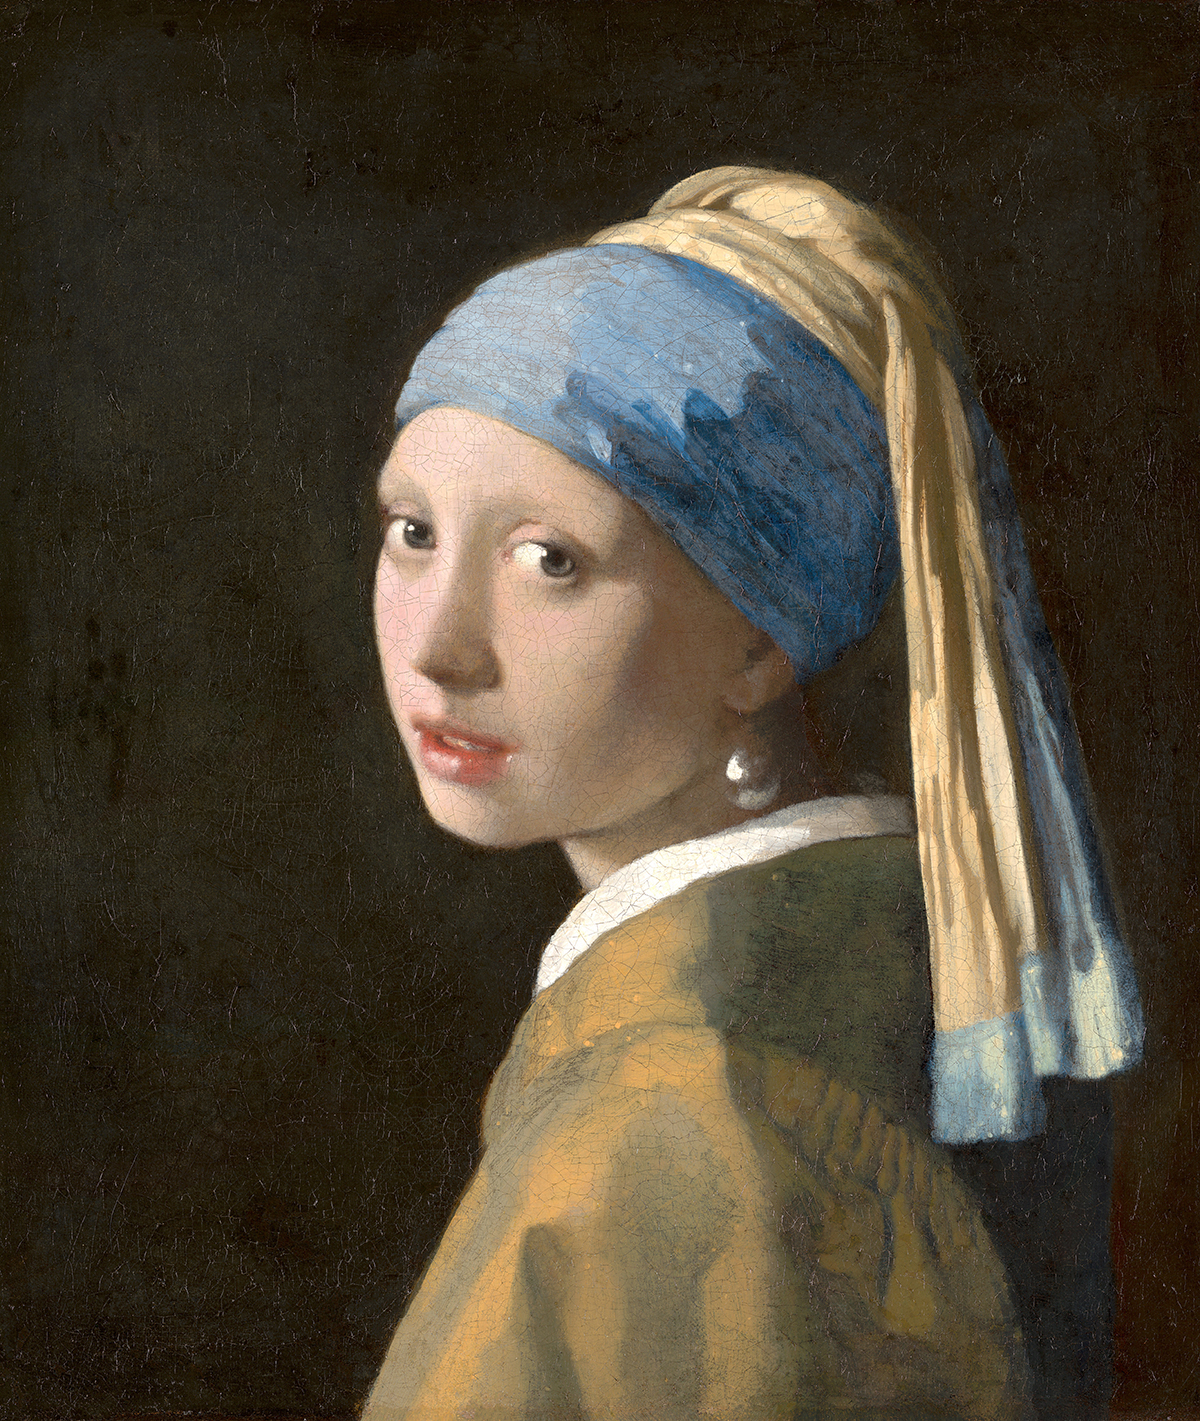 An example of glazing with Lapis Lazuli. Johannes Vermeer, Girl with a Pearl Earring